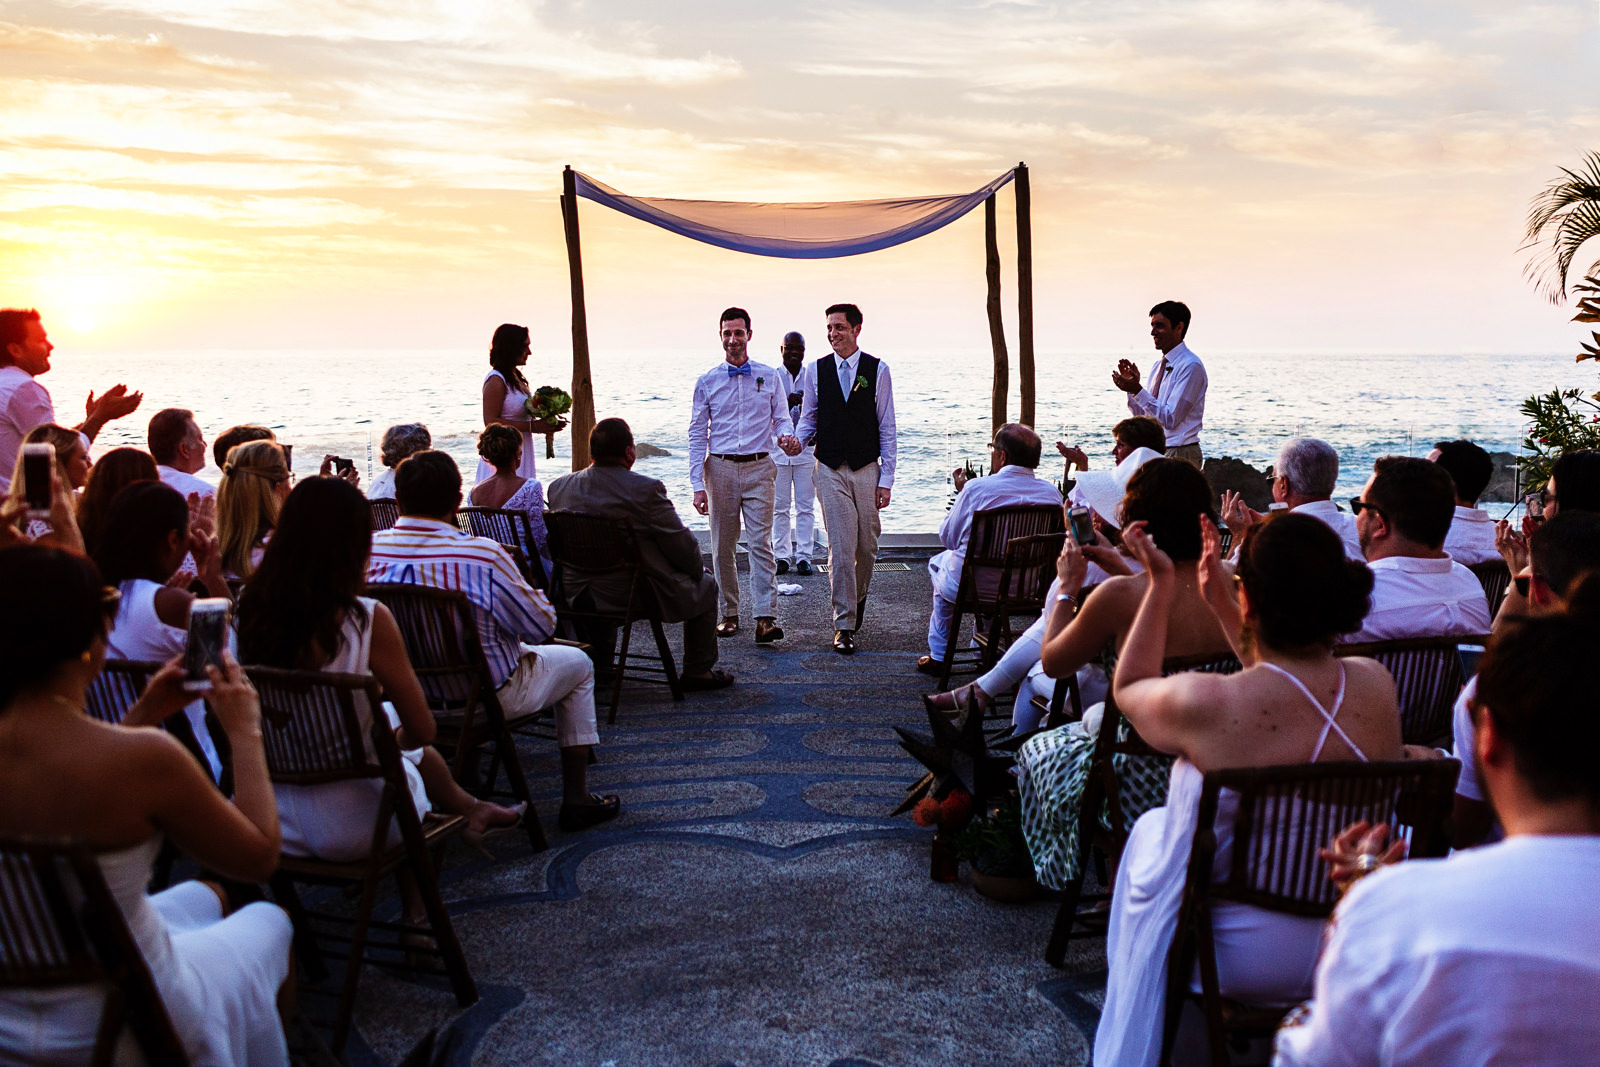 Gay couple exit down the aisle as their ceremony ends with the sunset behind them